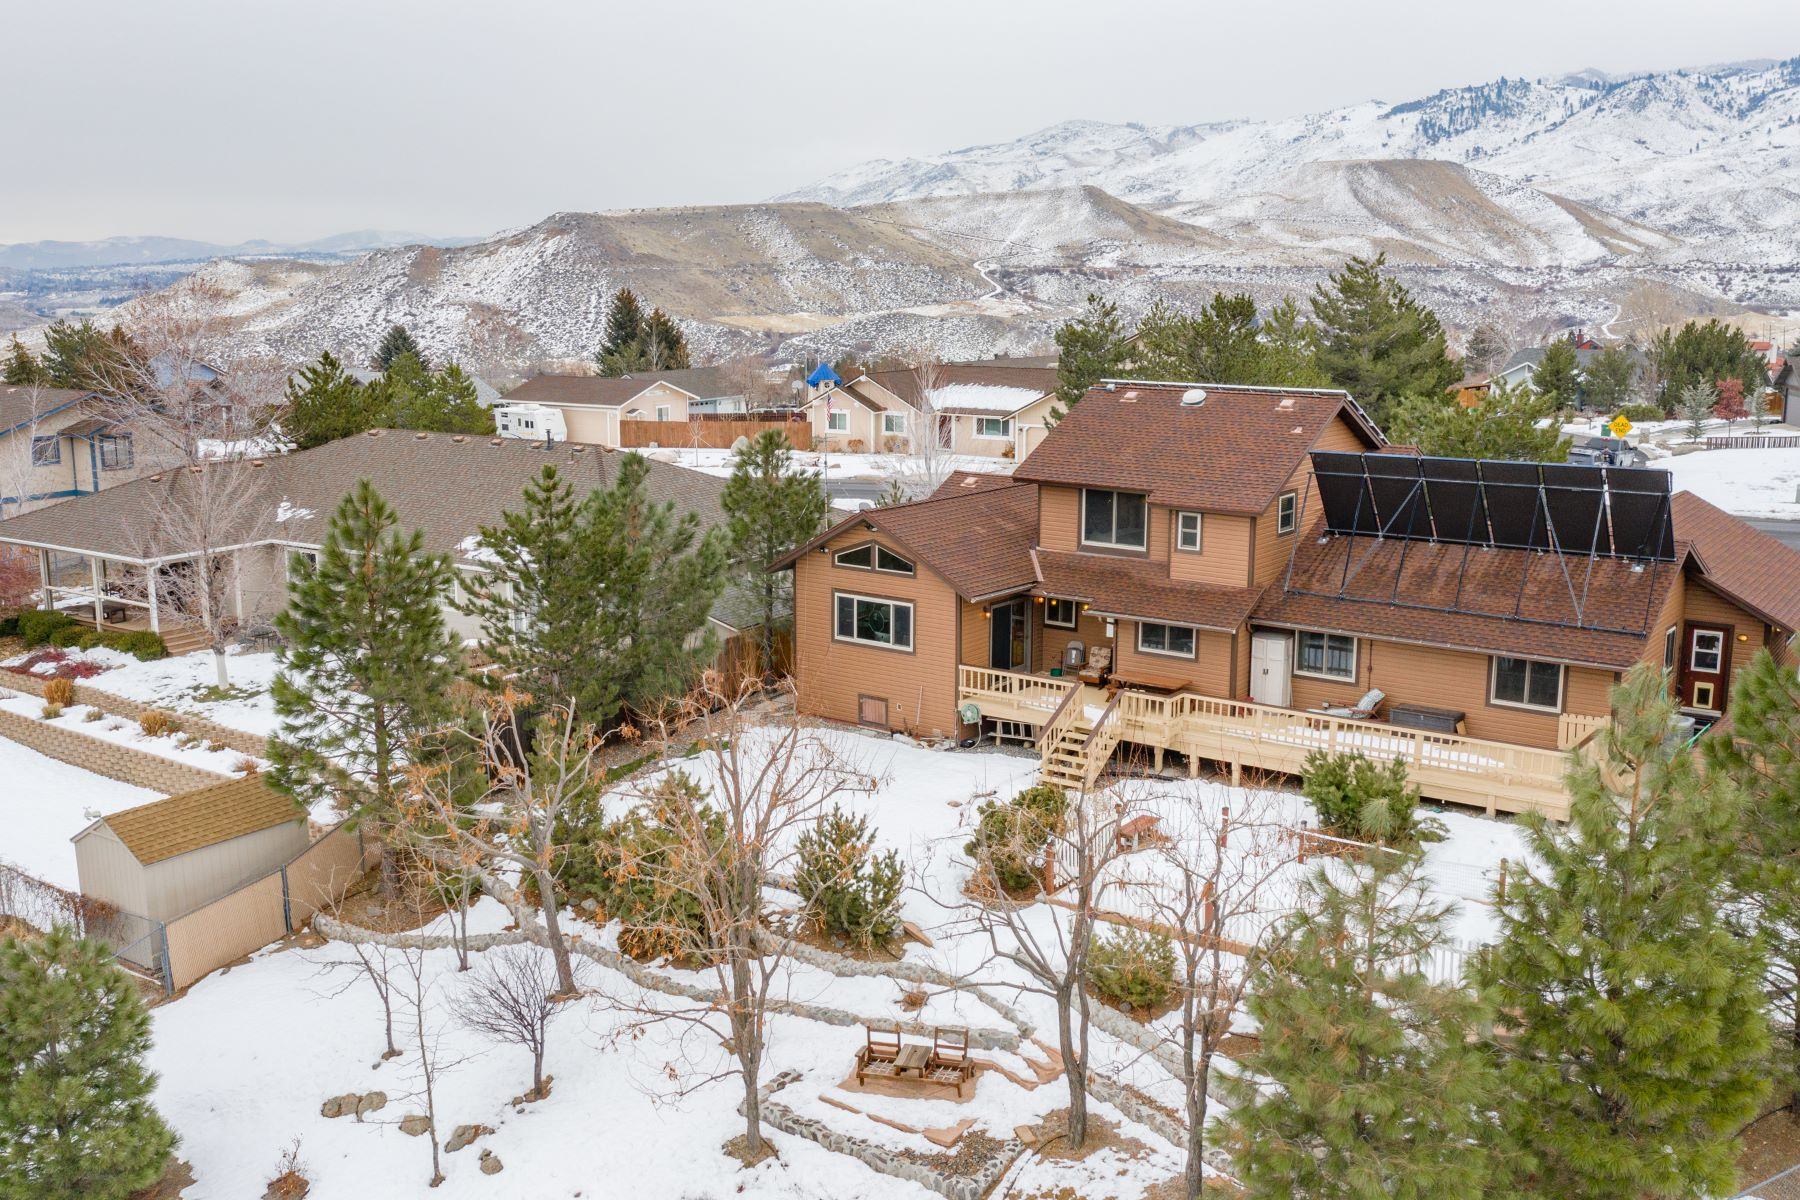 Single Family Home for Active at 295 Mogul Mountain Drive, Reno, Nevada 295 Mogul Mountain Drive Reno, Nevada 89523 United States